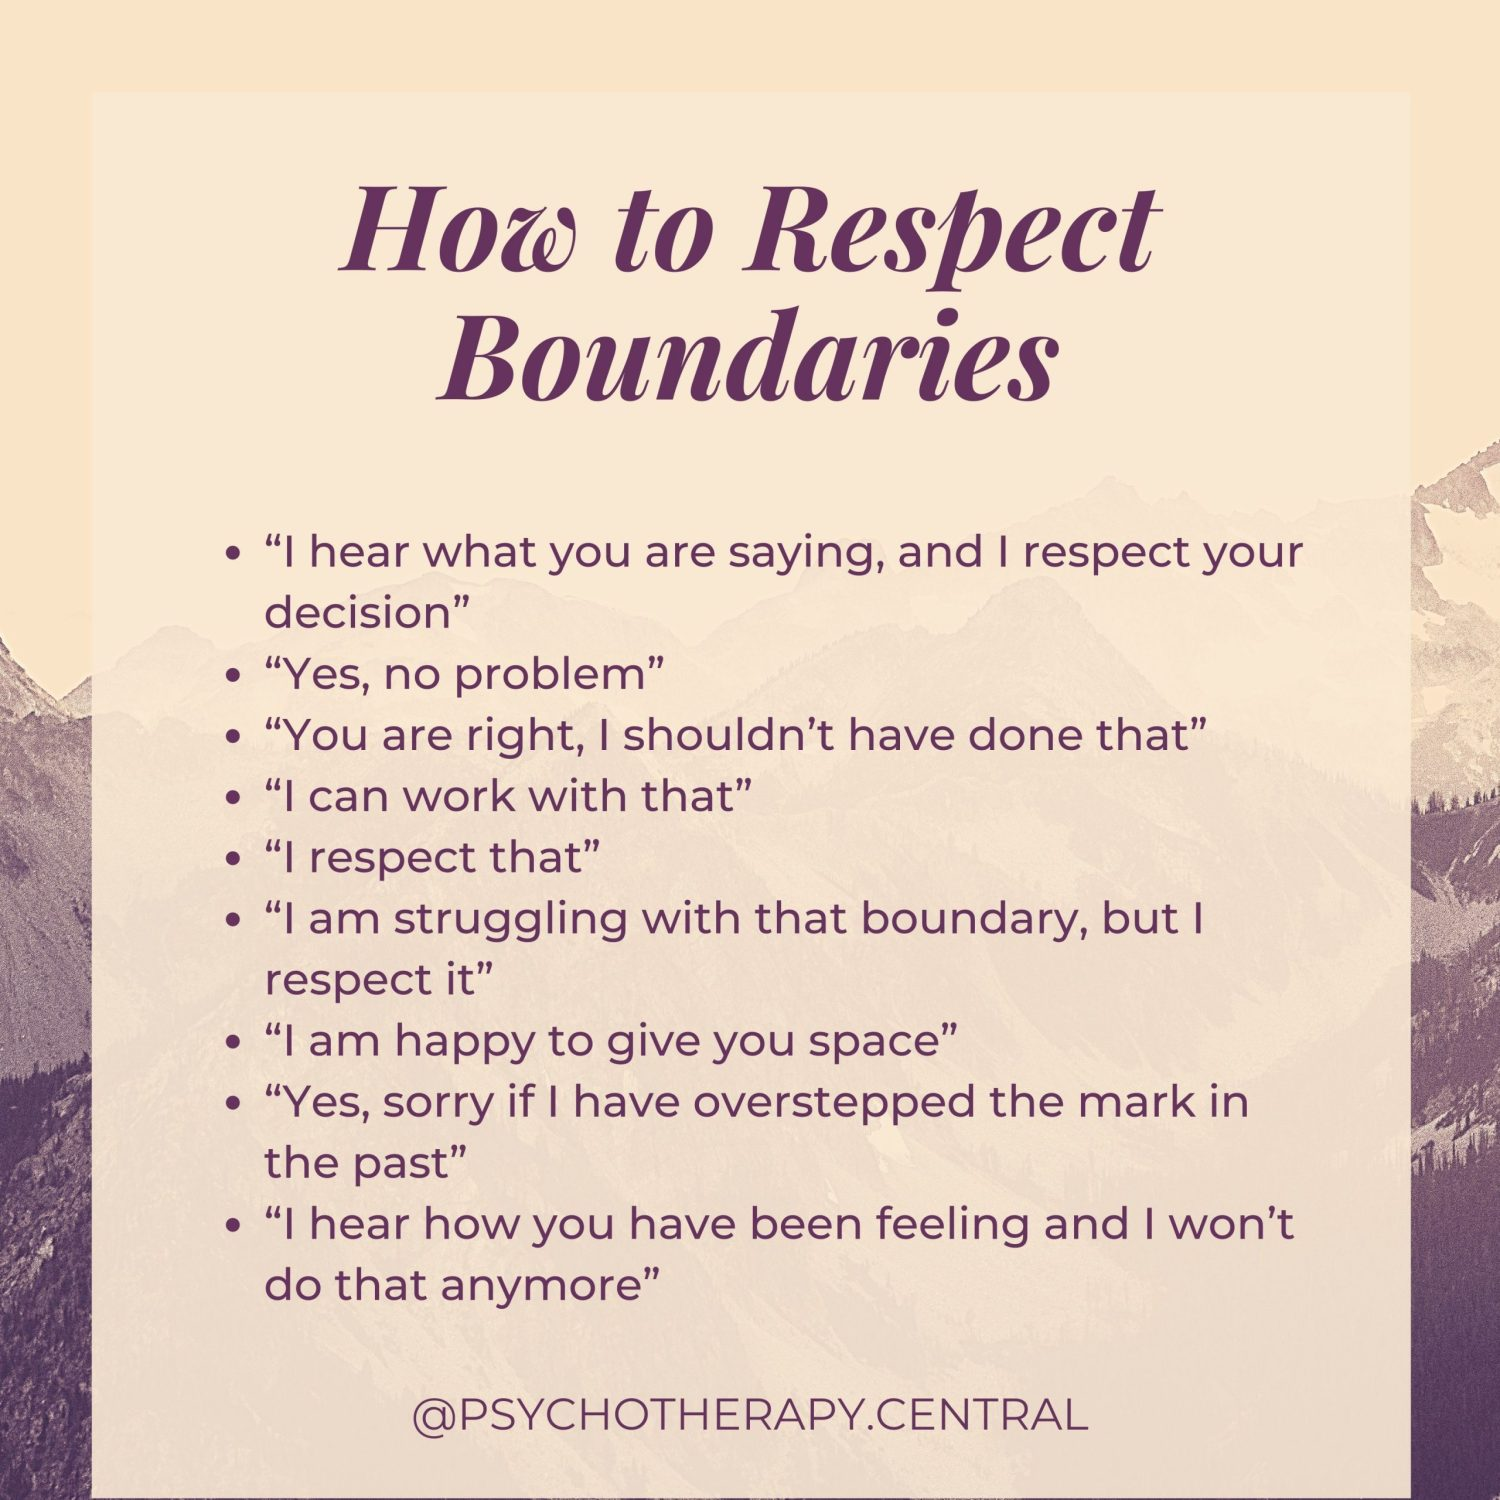 "How to Respect Boundaries ""I hear what you are saying, and I respect your decision"" ""Yes, no problem"" ""You are right, I shouldn't have done that"" ""I can work with that"" ""I respect that"" ""I am struggling with that boundary, but I respect it"" ""I am happy to give you space"" ""Yes, sorry if I have overstepped the mark in the past"" ""I hear how you have been feeling and I won't do that anymore"""